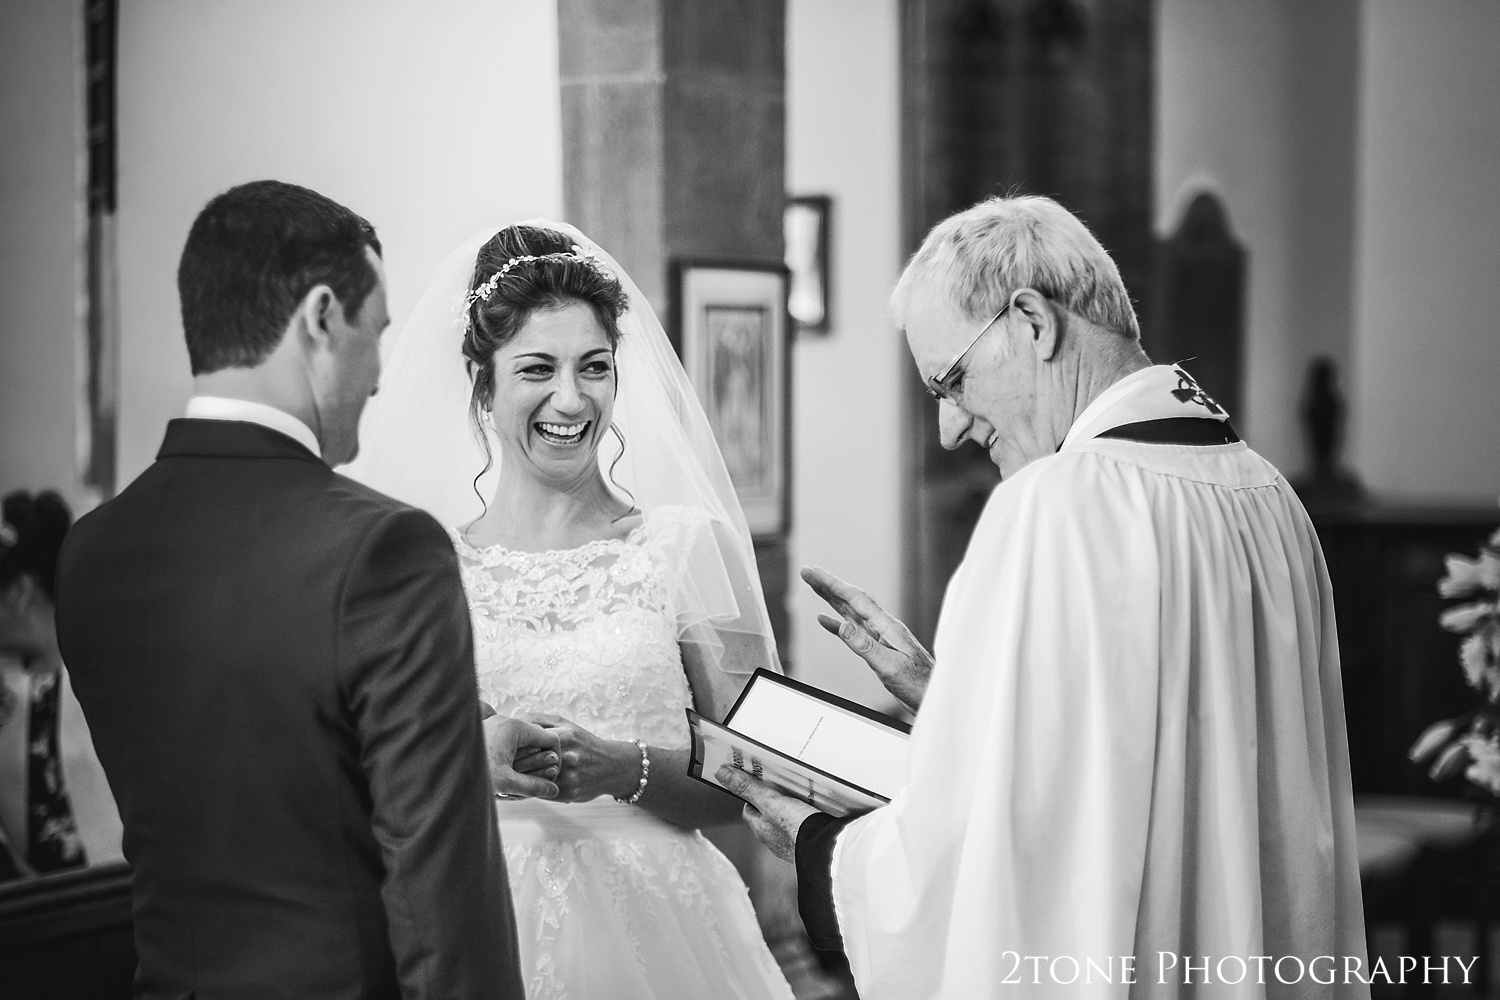 Wedding vows in East Coker, Somerset by www.2tonephotography.co.uk